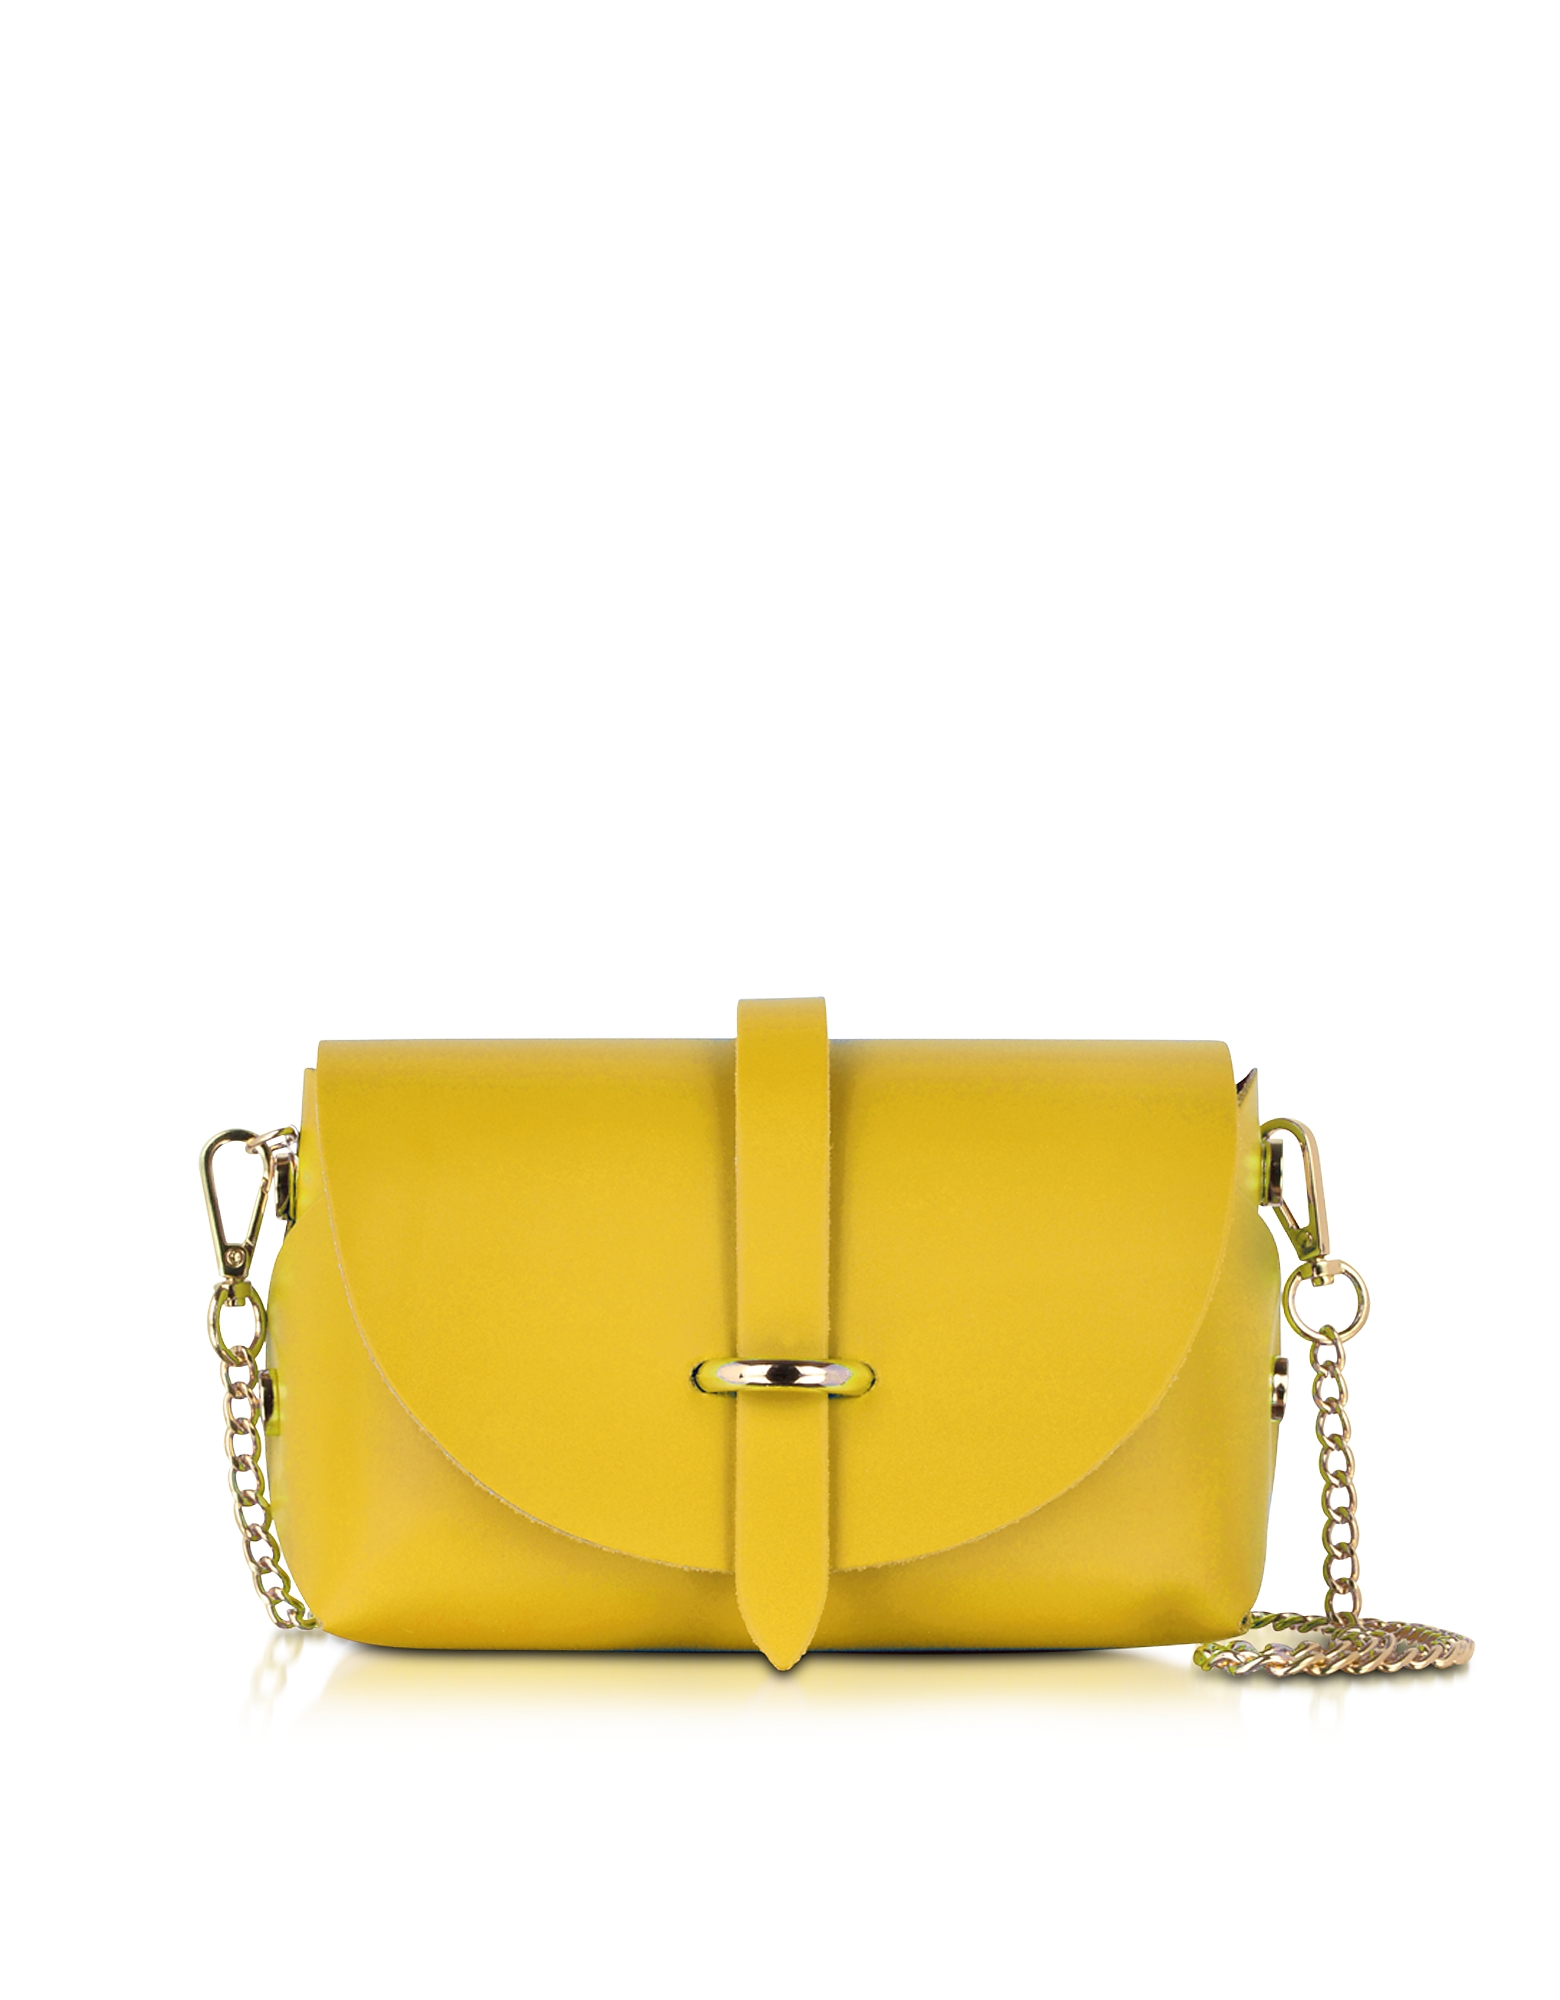 Le Parmentier Handbags, Caviar Small Yellow Leather Shoulder Bag